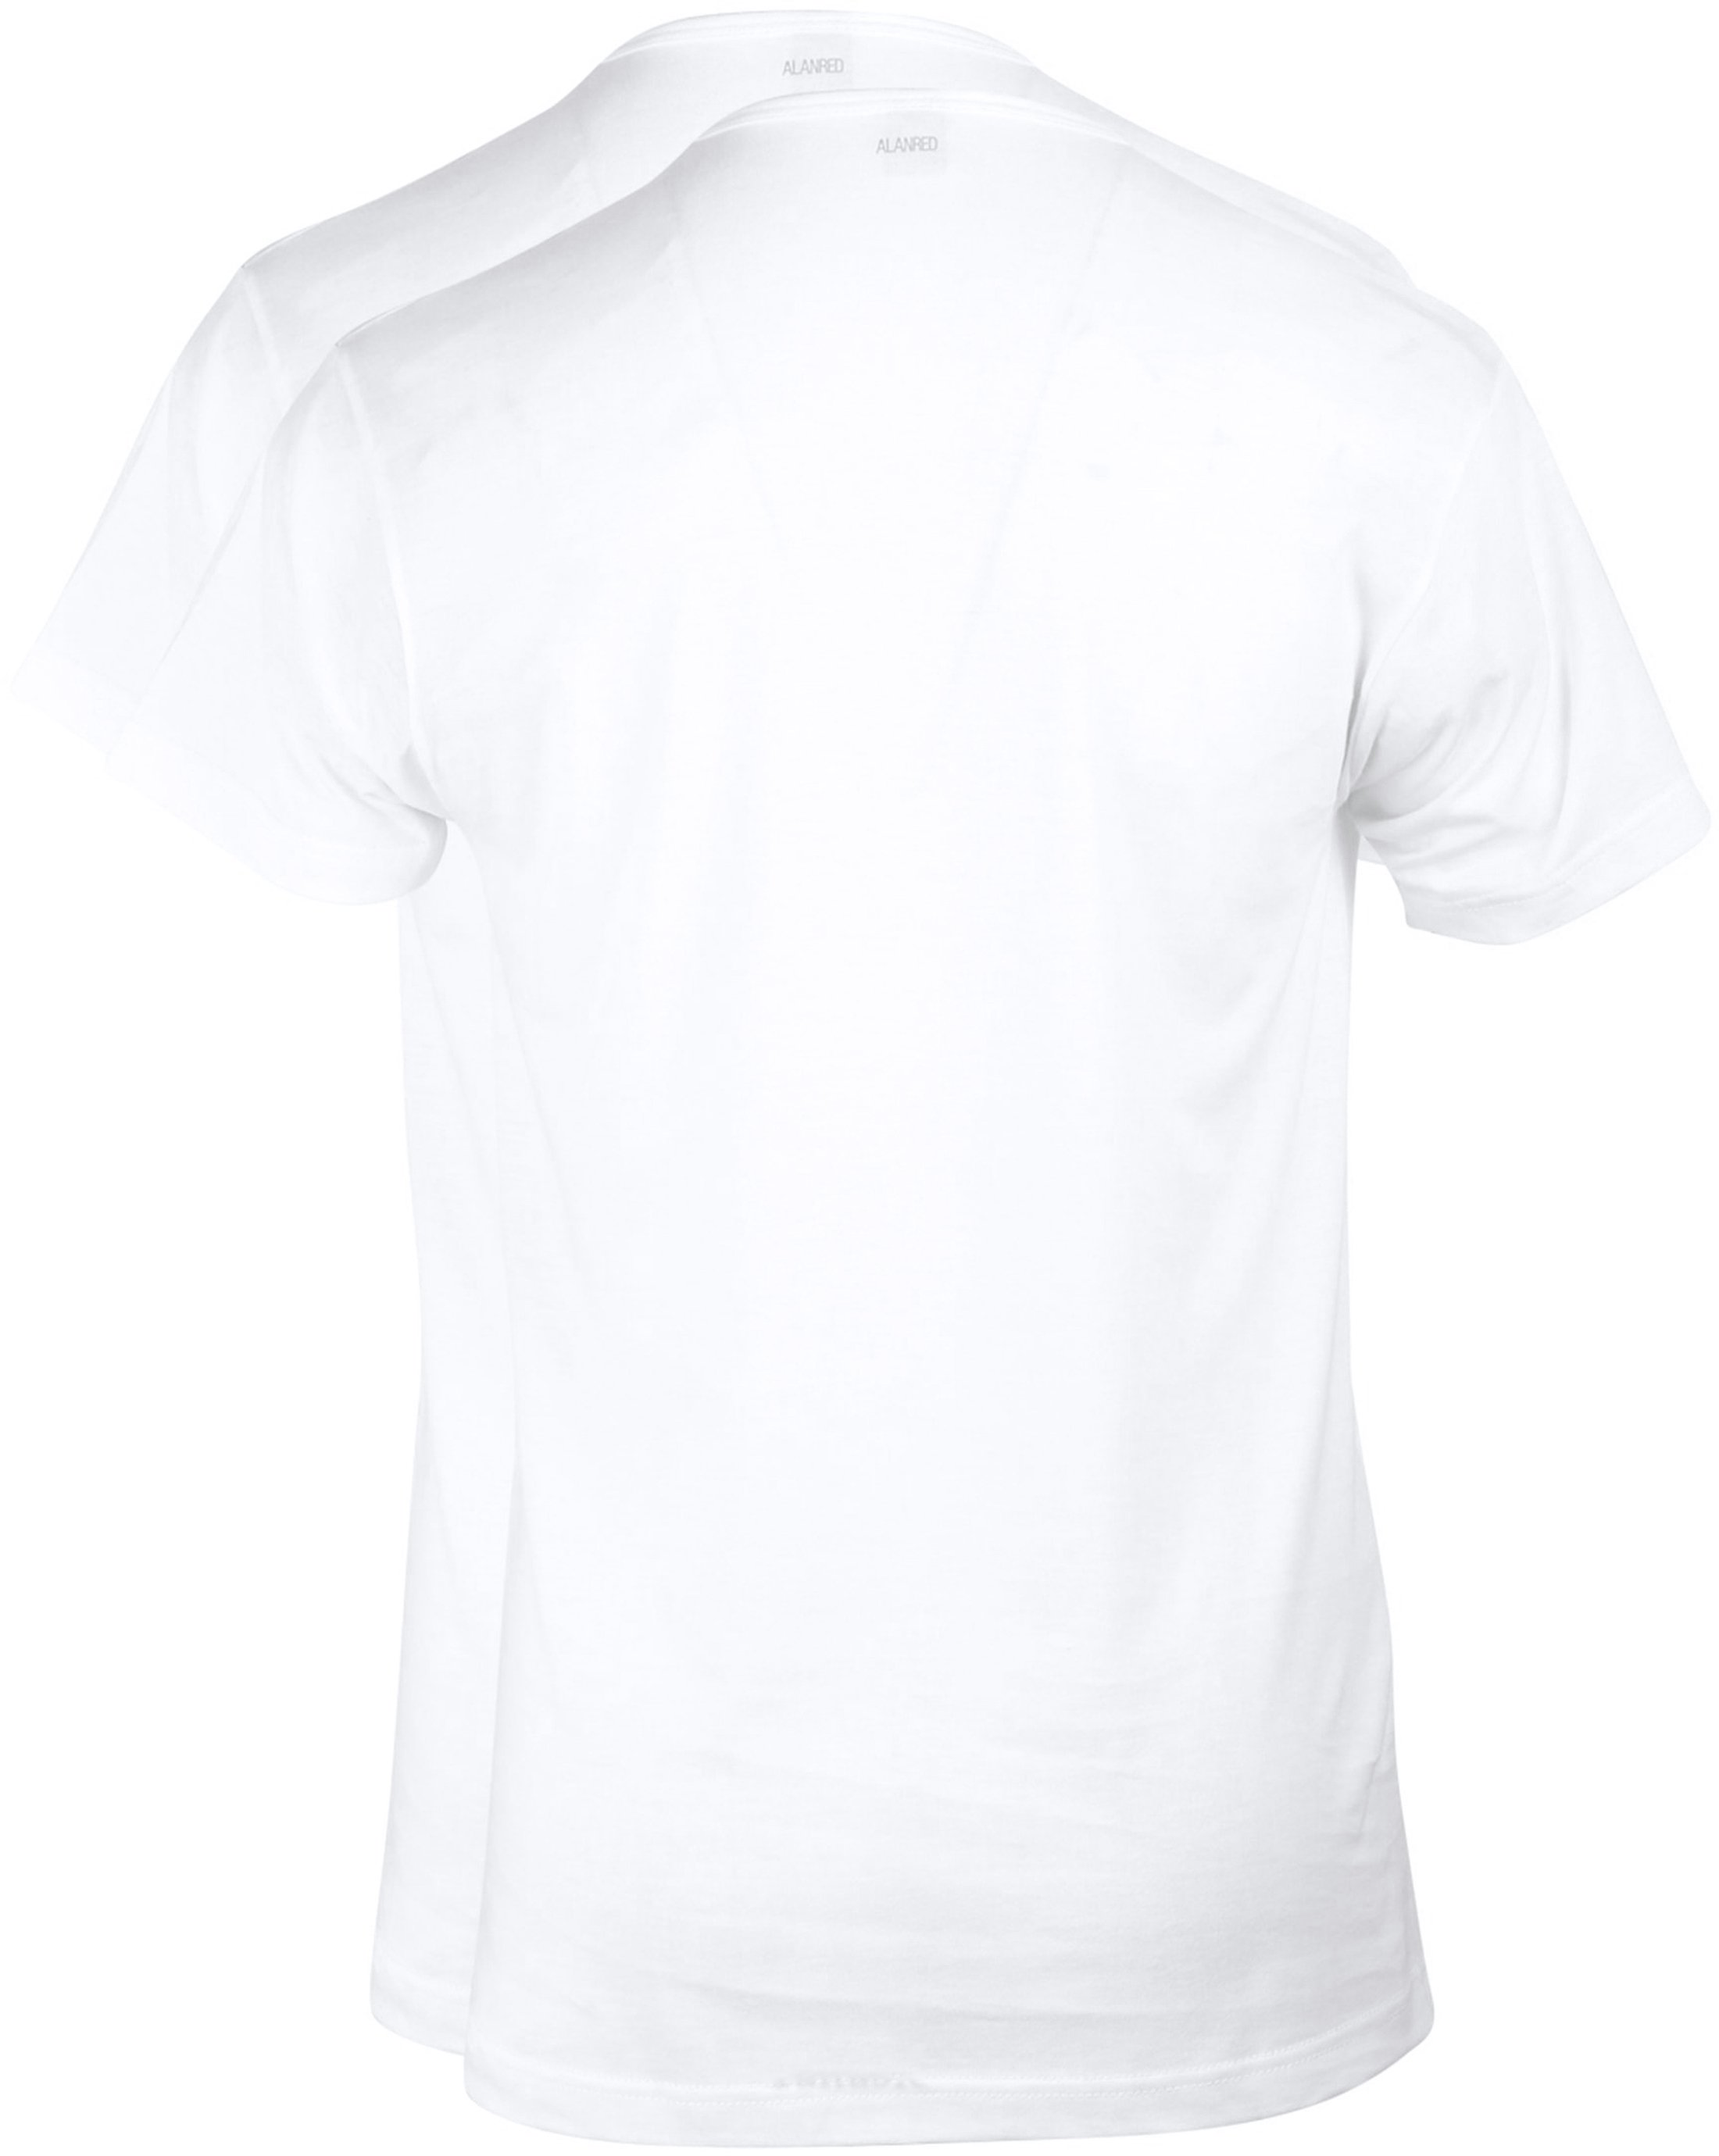 Alan Red Vermont T-Shirt V-Neck White (2Pack) foto 3